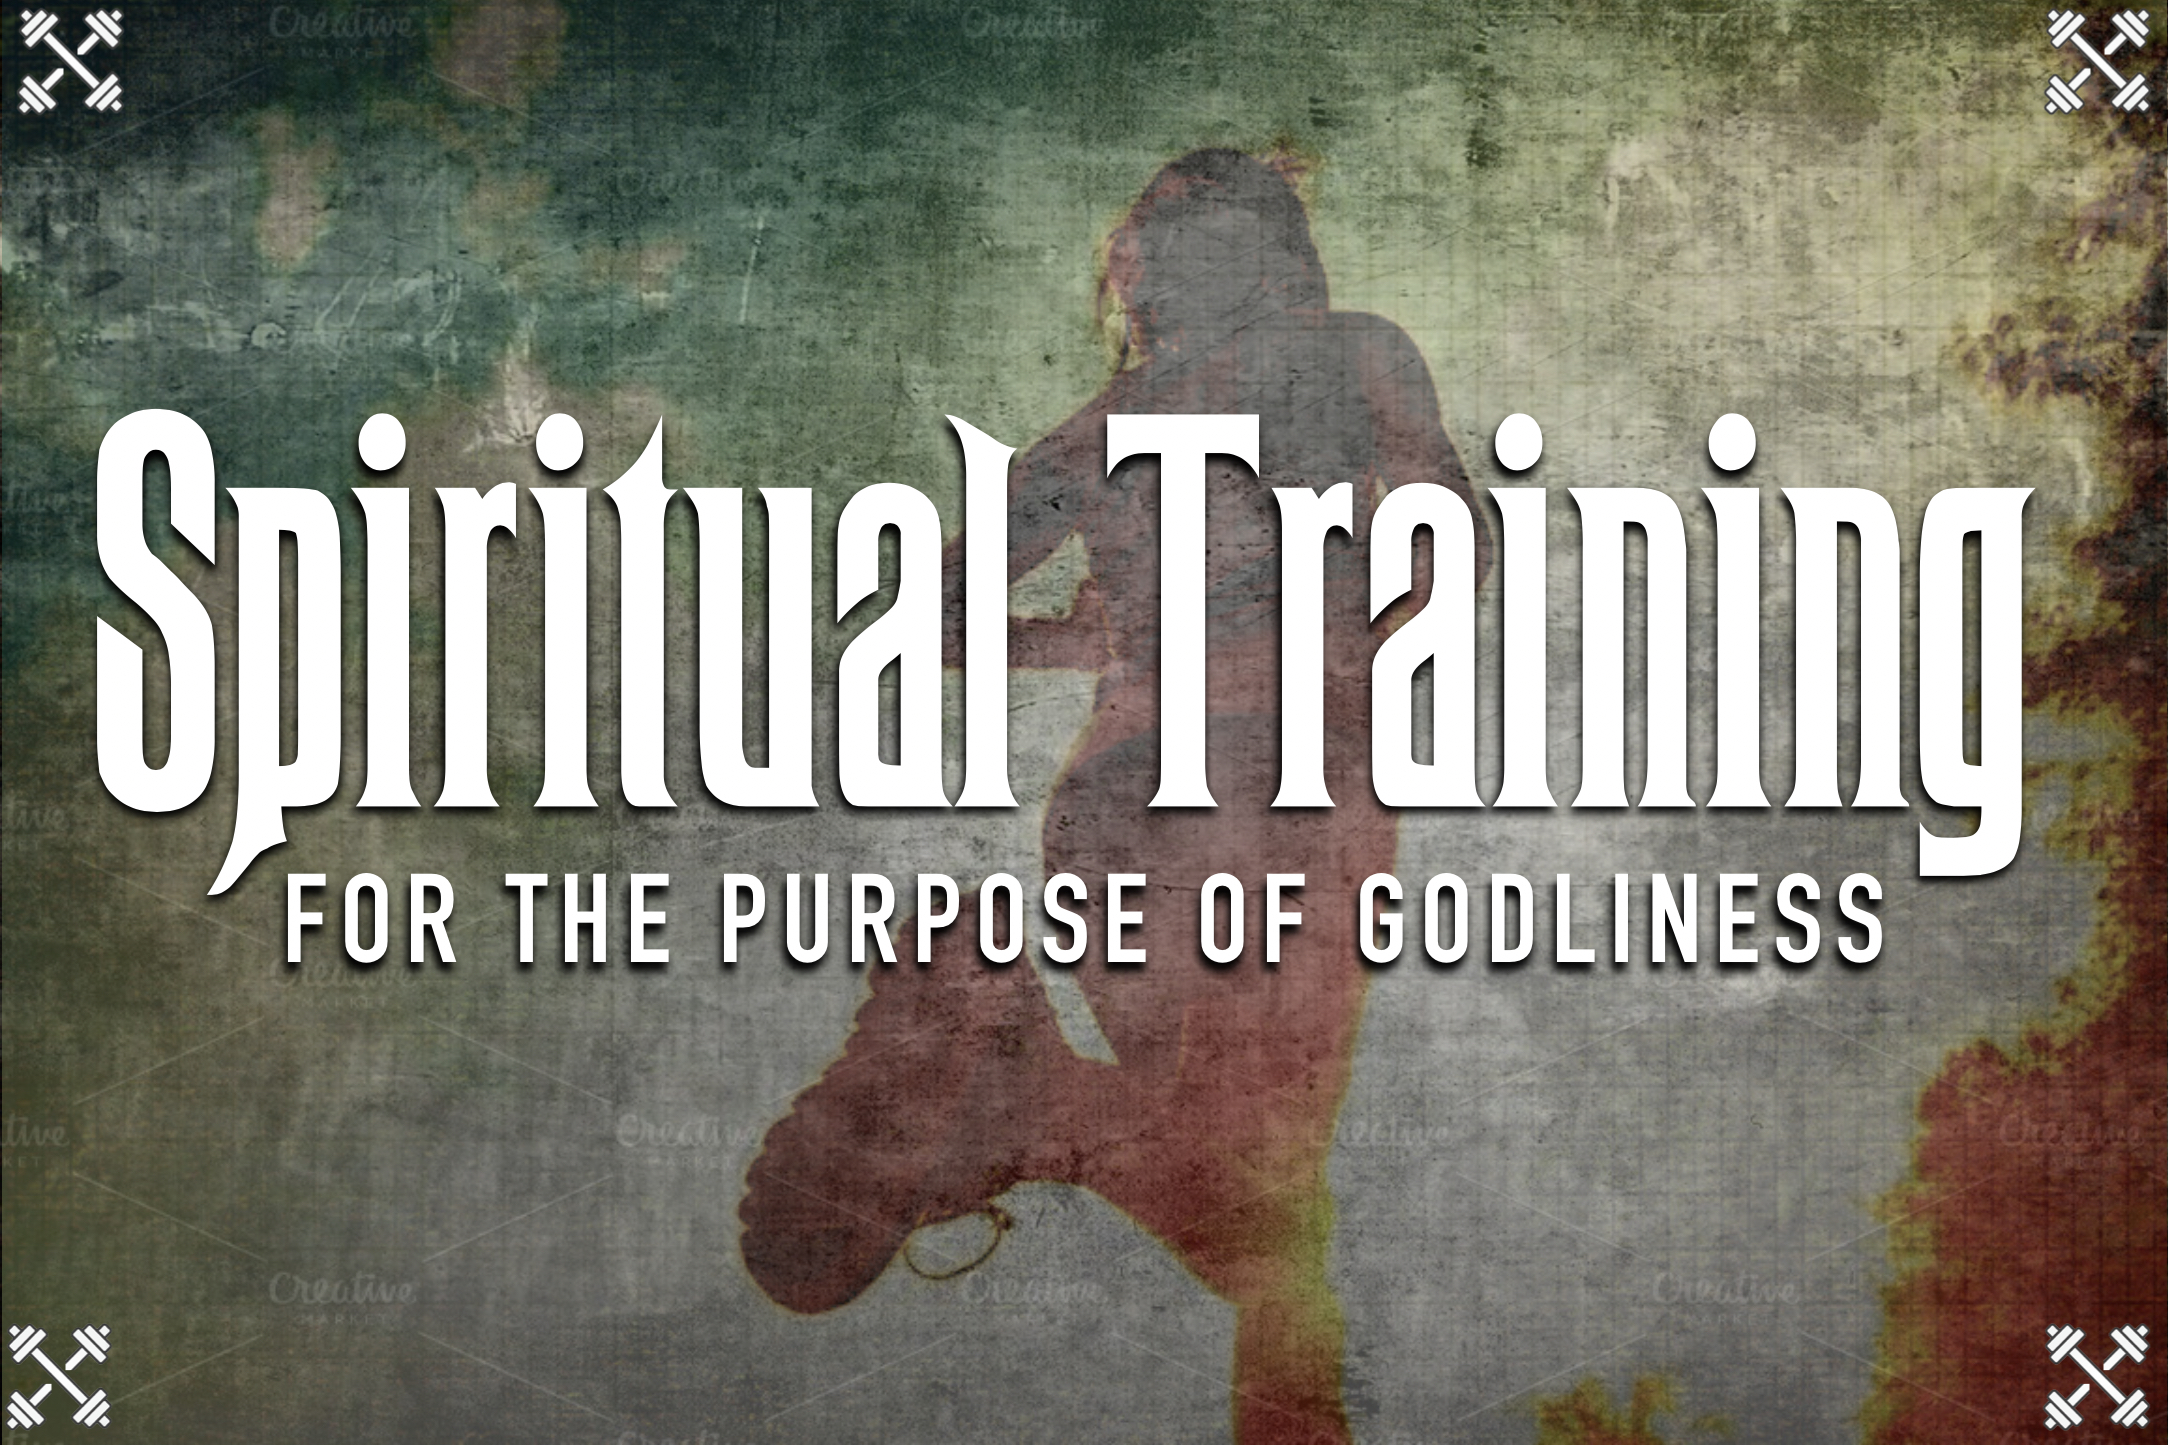 spiritual training sermon graphic